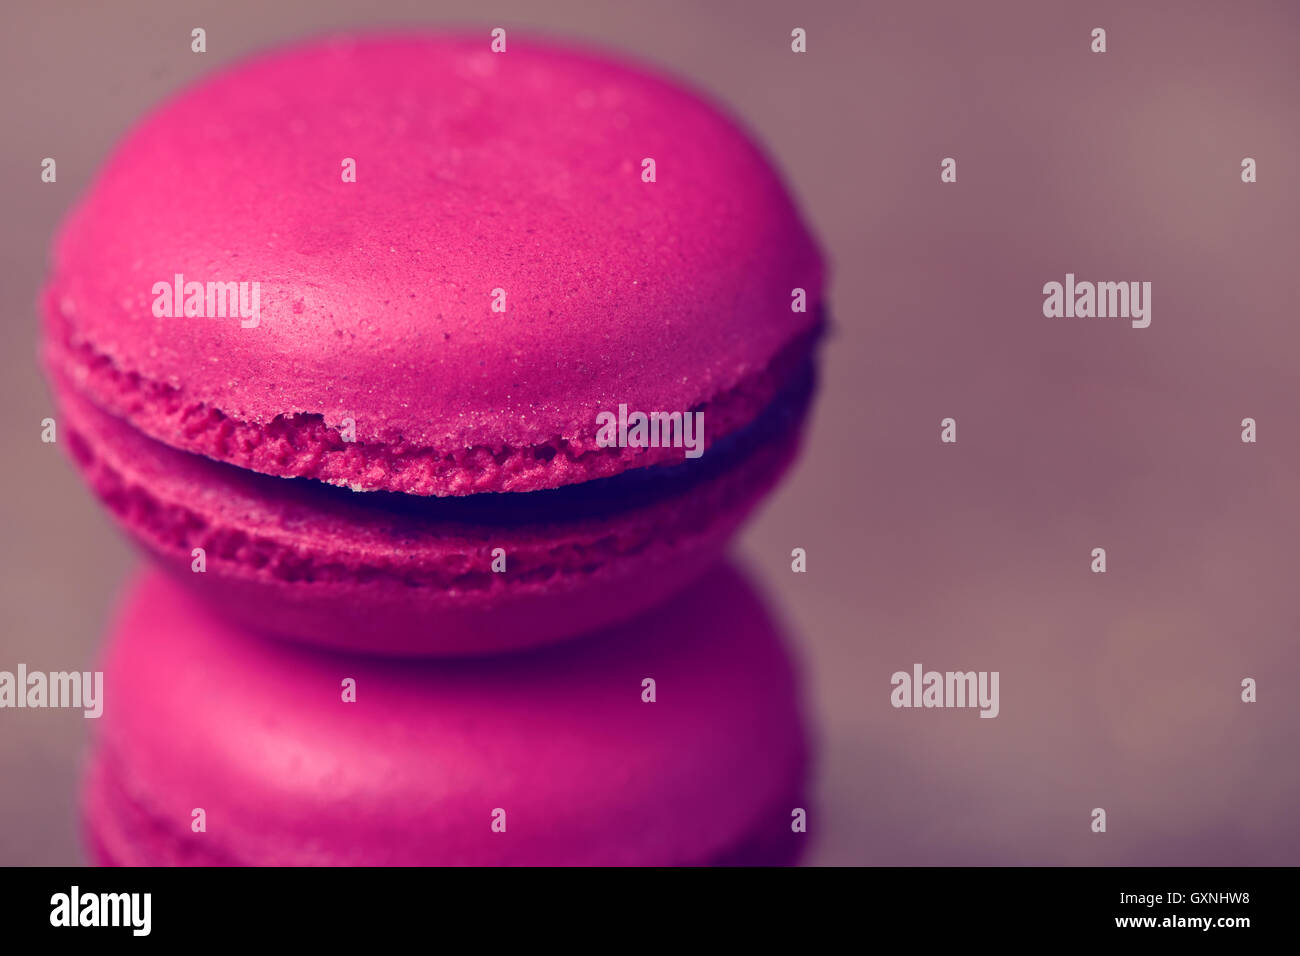 closeup of a stack of appetizing purple macarons against a gray background - Stock Image